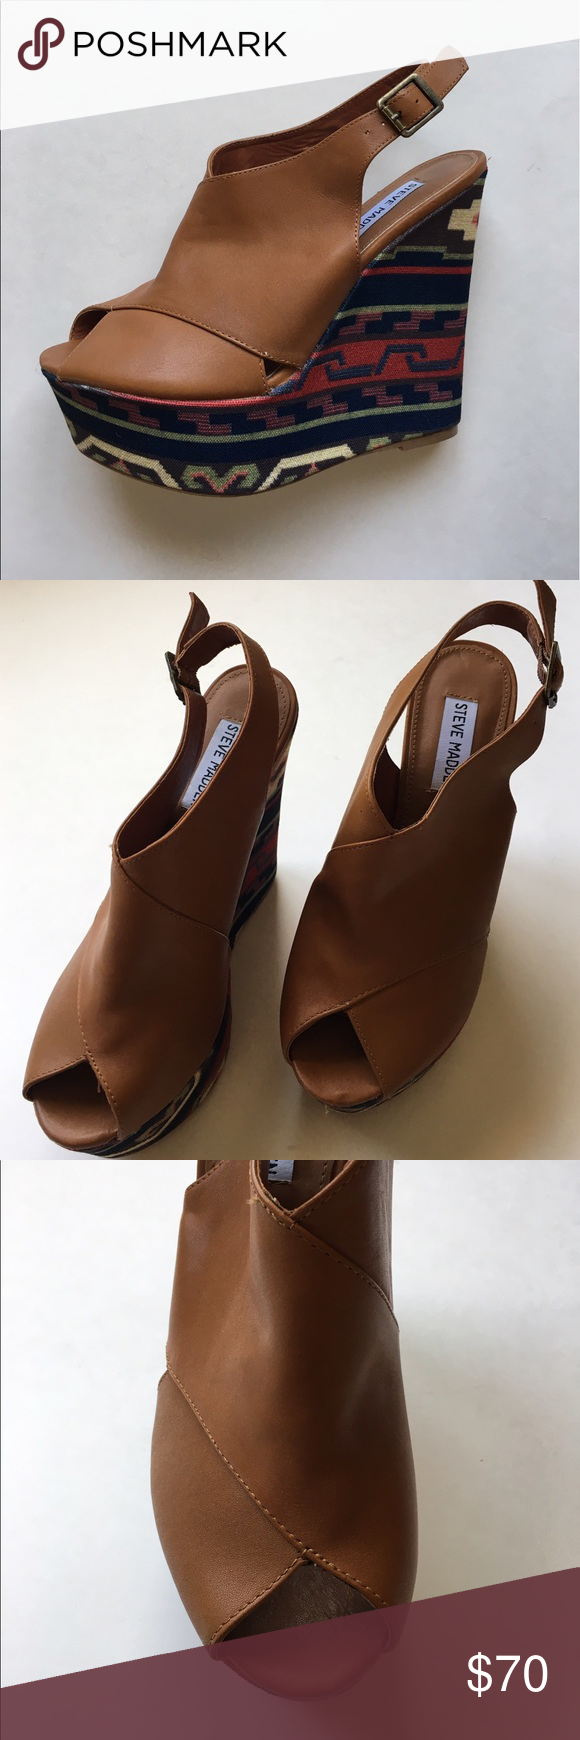 """🆕 Steve Madden Platform Wedges NWOT - Hello!   You will be making a statement in these shoes!  Unique and fun, pair with a solid color to show off the heel. Never worn. Size - 8M. Platform -1.75""""/Heel -5.75"""" Steve Madden Shoes Platforms"""